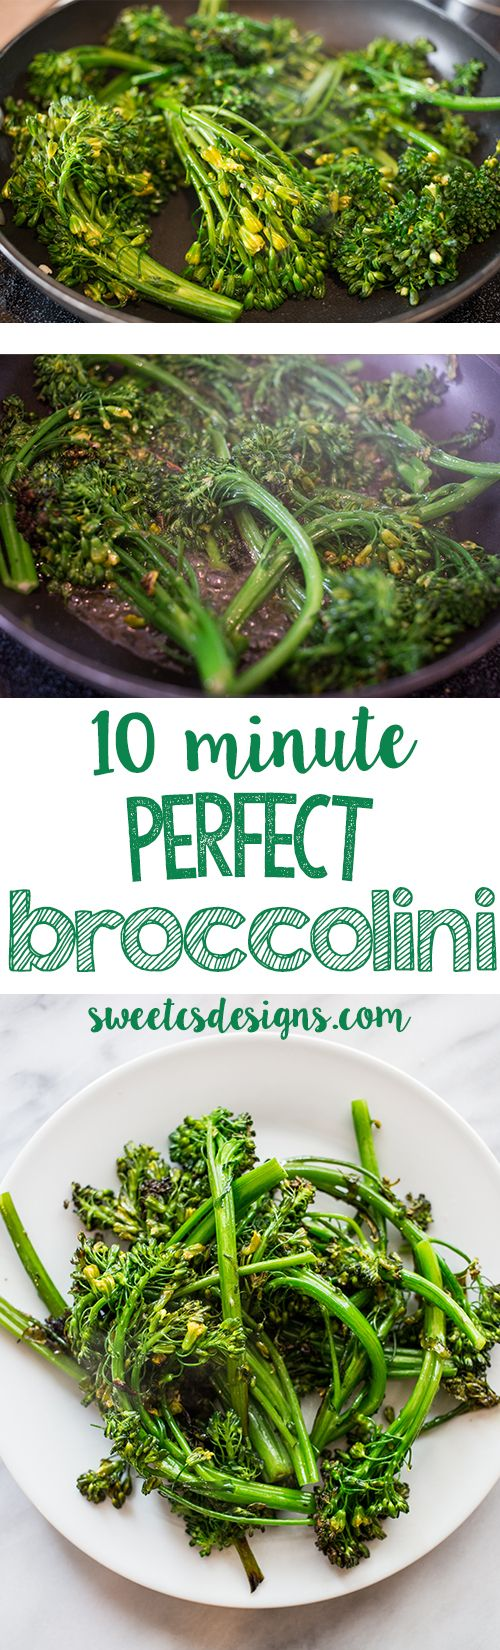 Want a delicious, easy, but impressive veggie for a side dish? This broccolini is always our familys favorite and takes just 10 minutes!